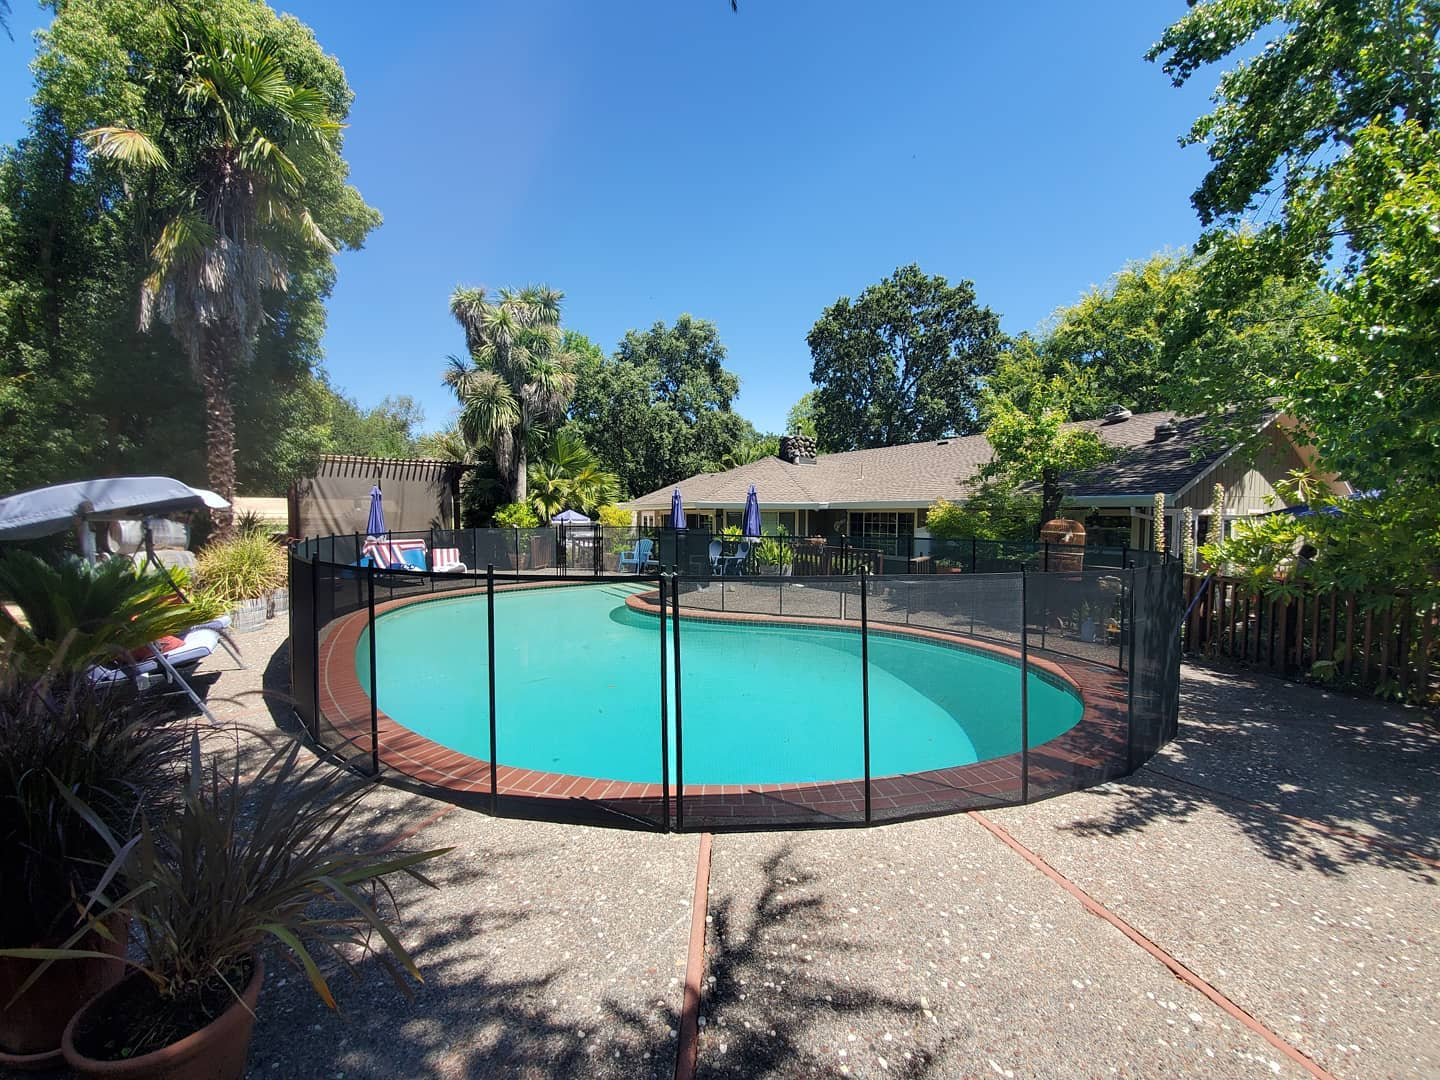 pool safety fence installer in Walnut Creek, CA